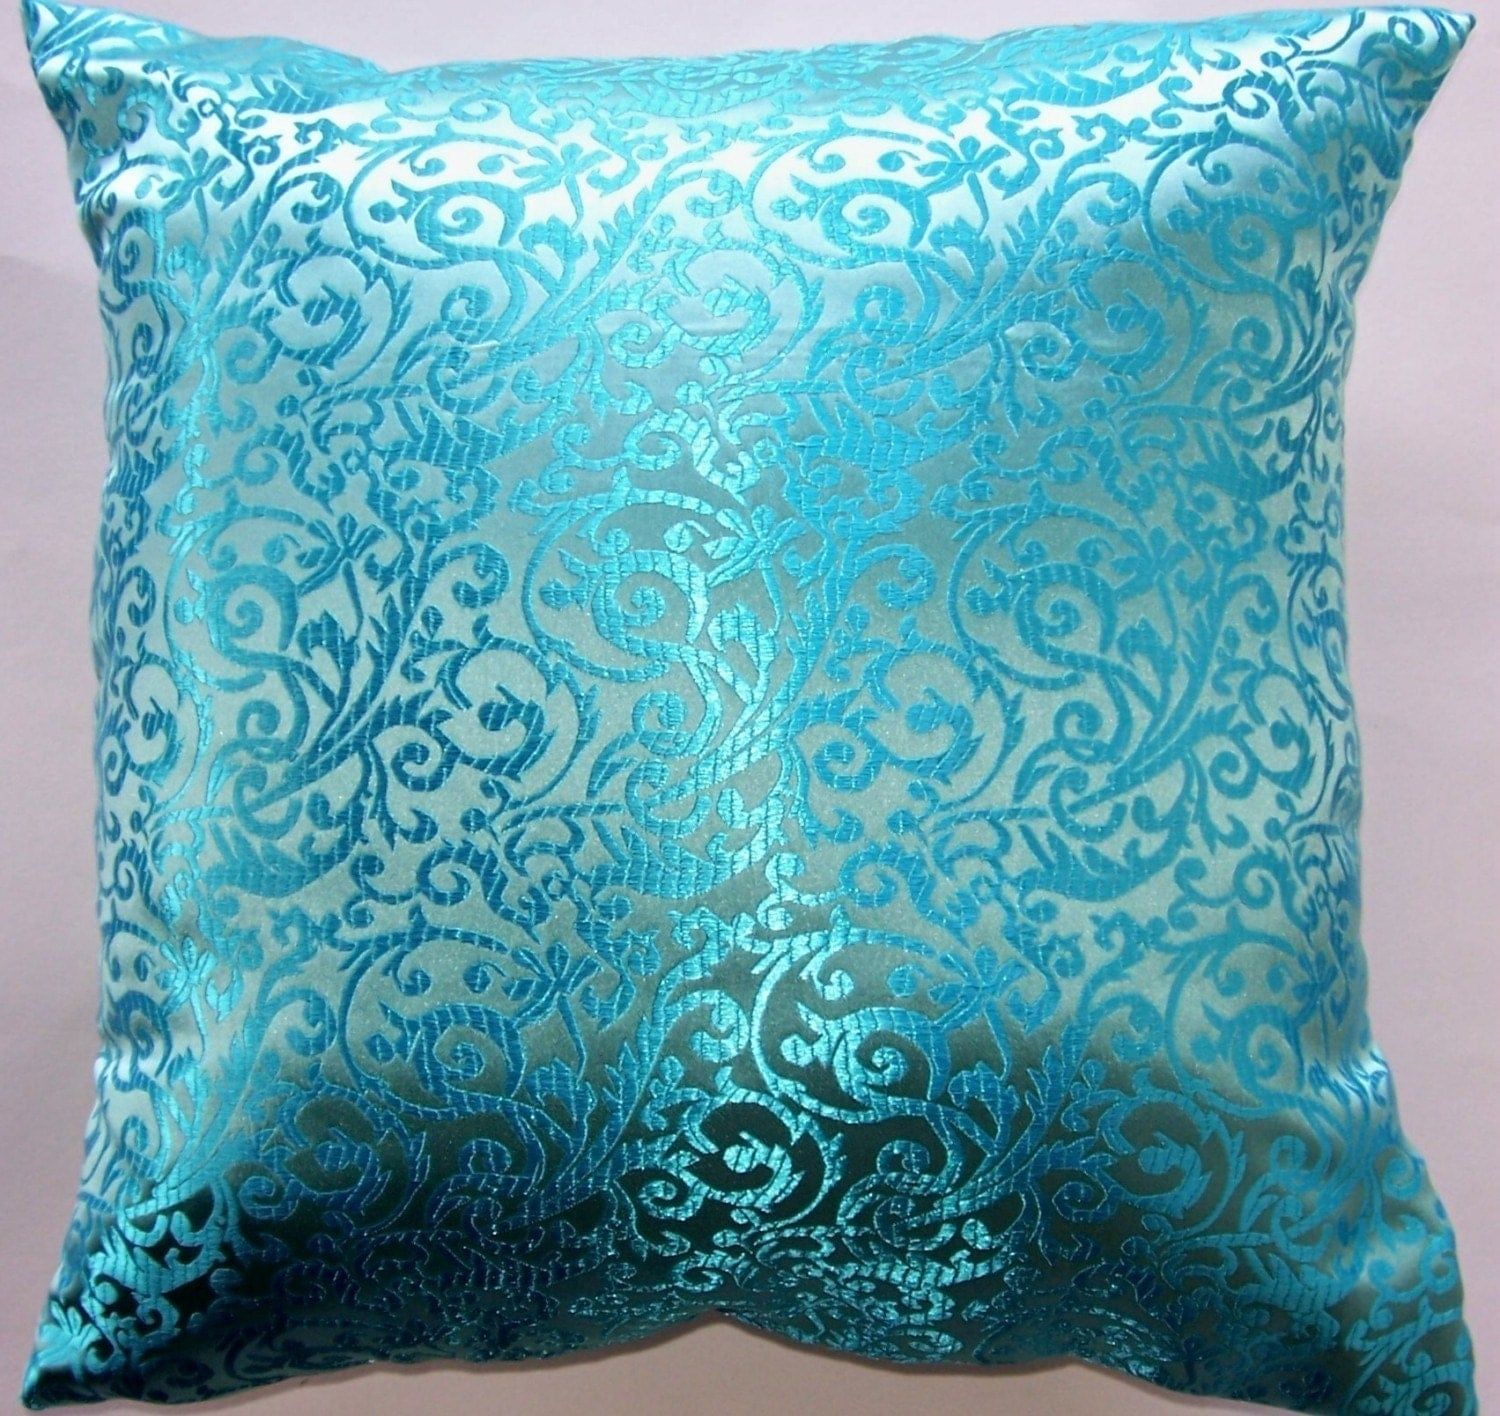 Throw Pillow Turquoise : Turquoise Throw Pillow Cover Satin Brocade Cushion Cover